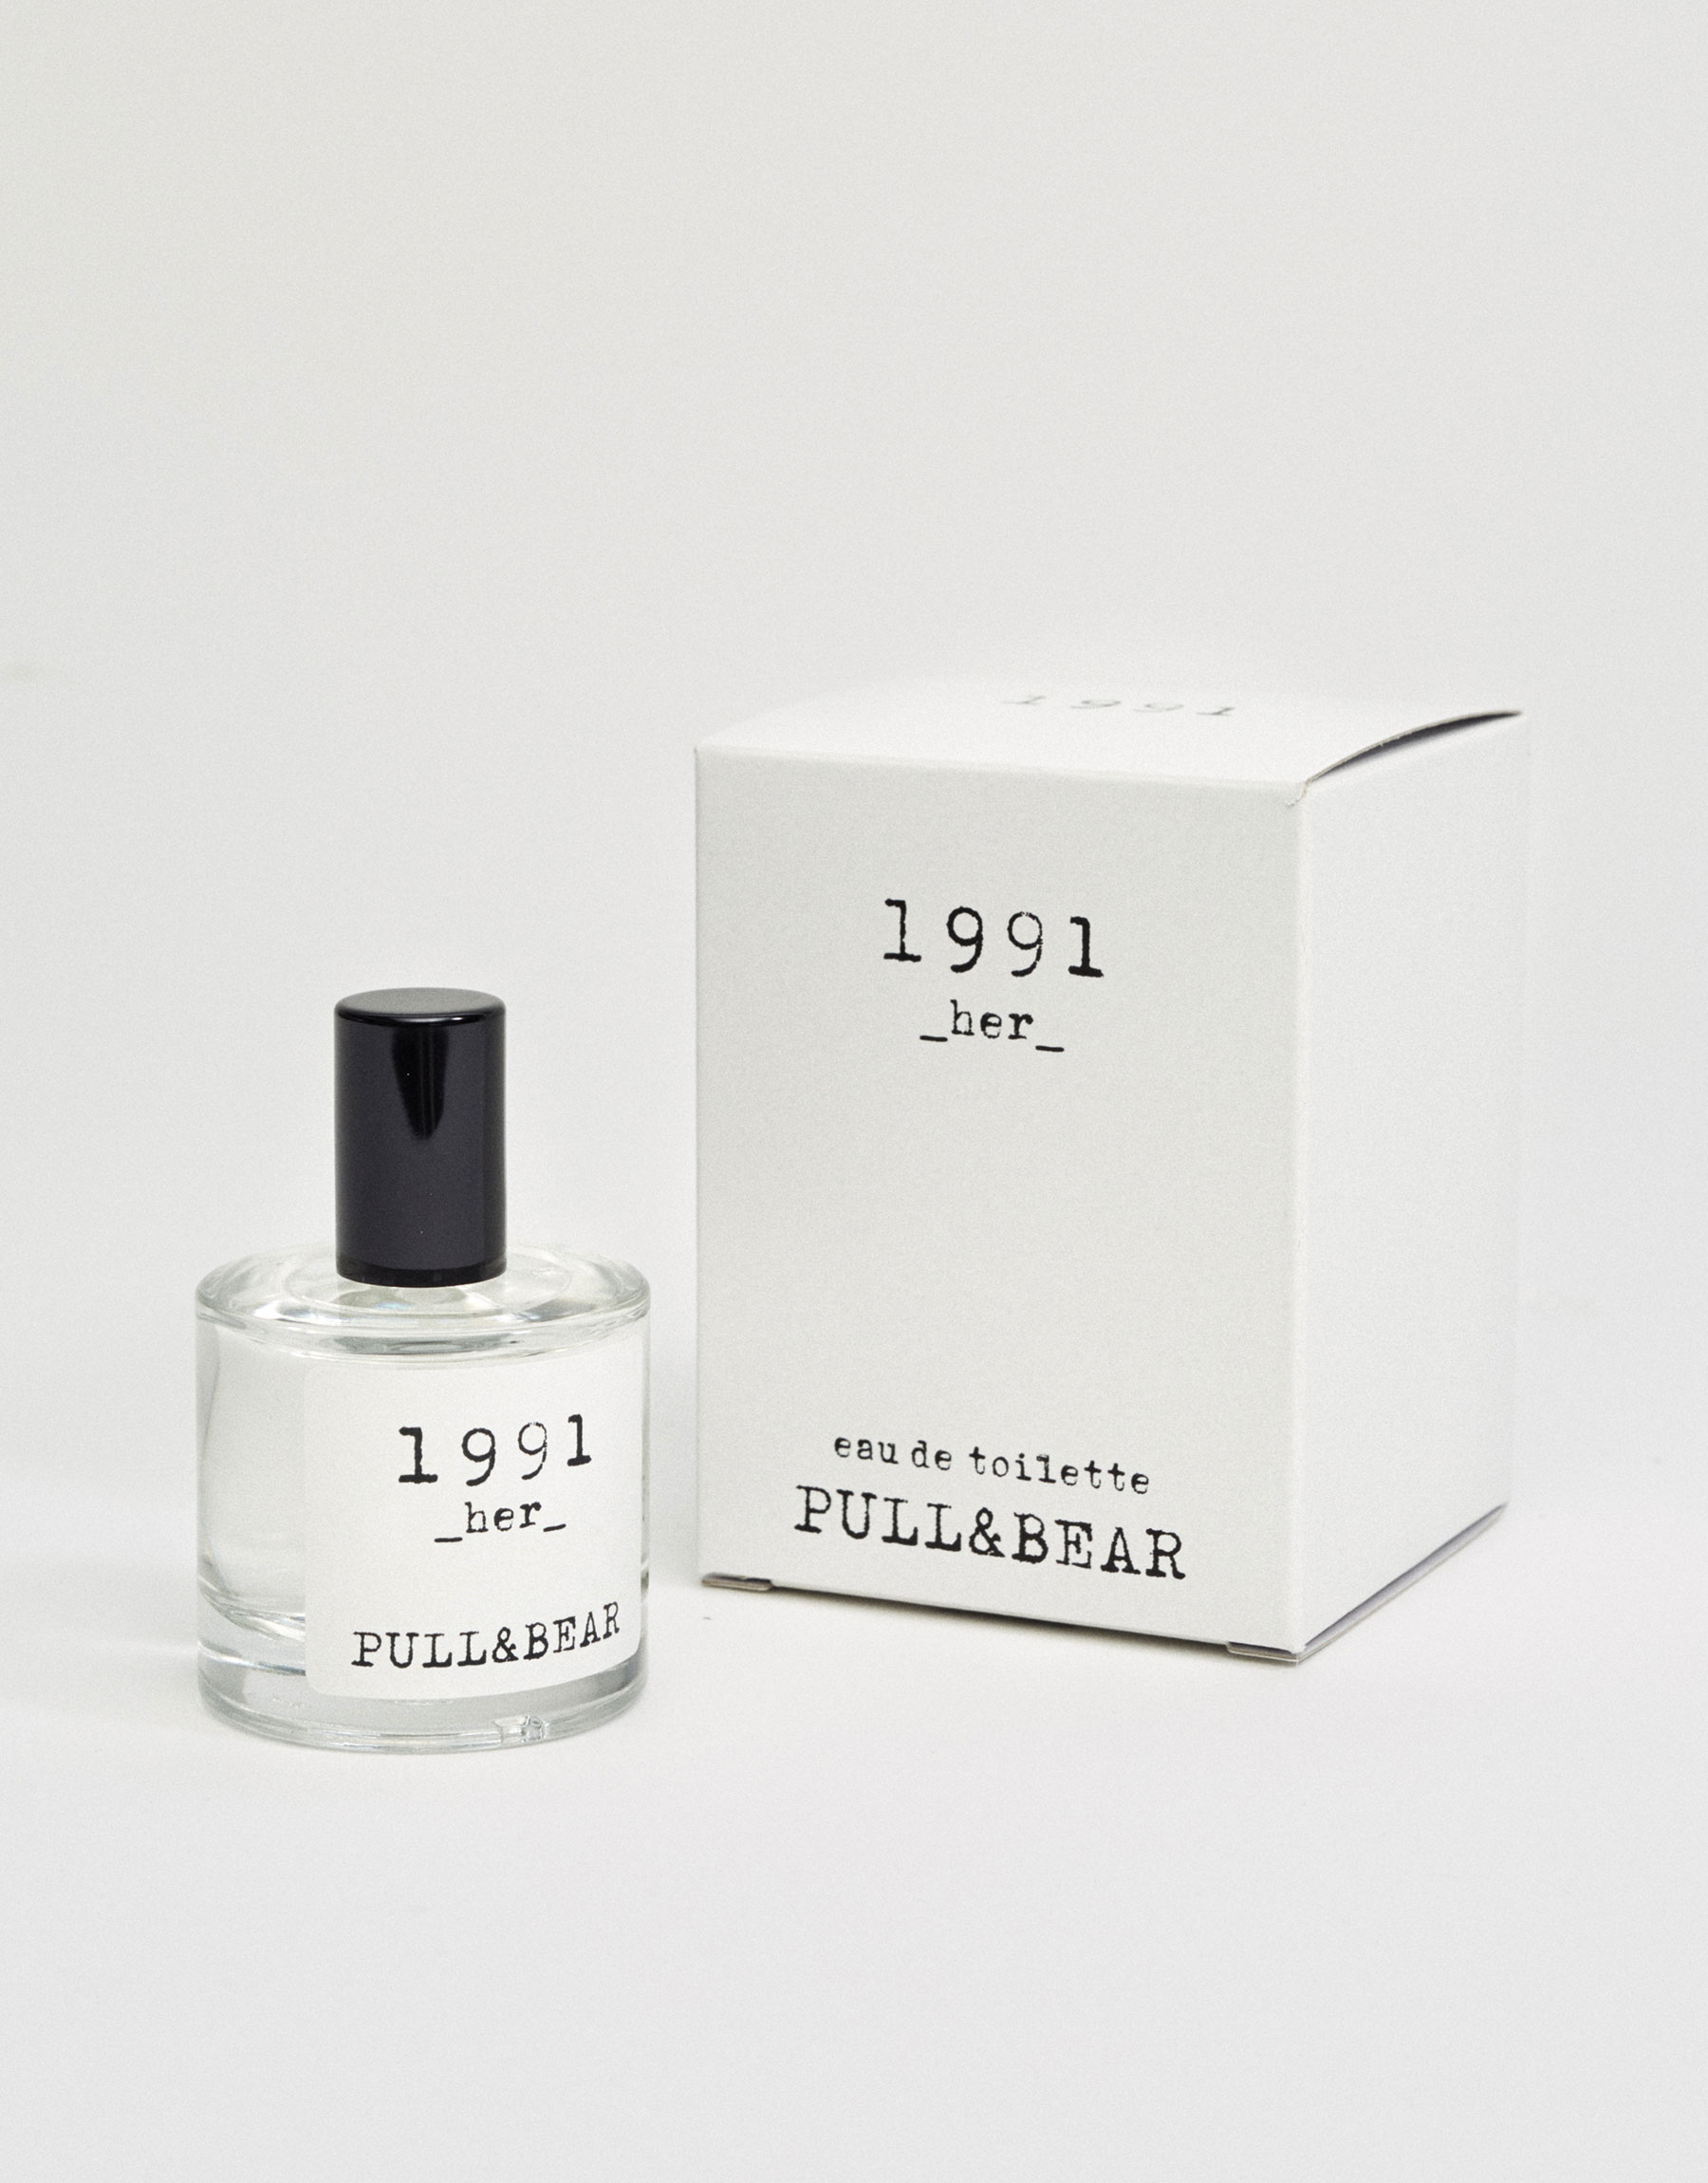 Eau de toilette pull & bear 1991 her 30ml